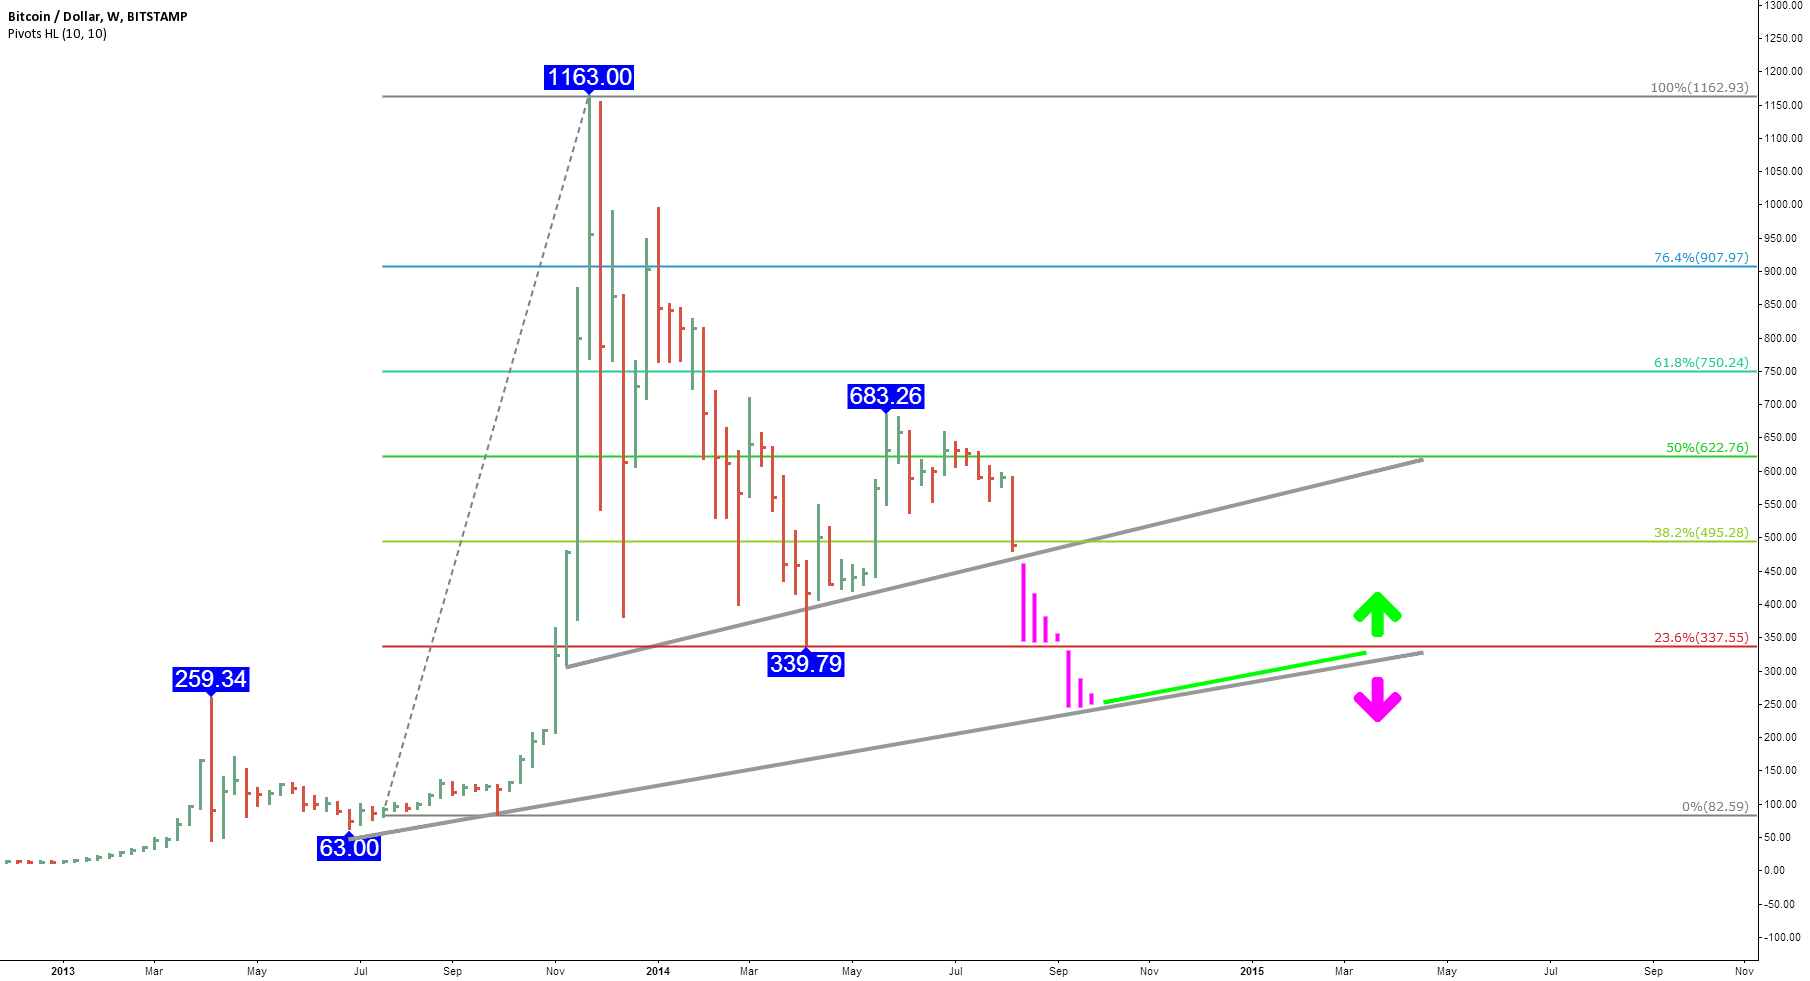 Bitcoin price doom analysis - Why Bitcoin might crash to $333